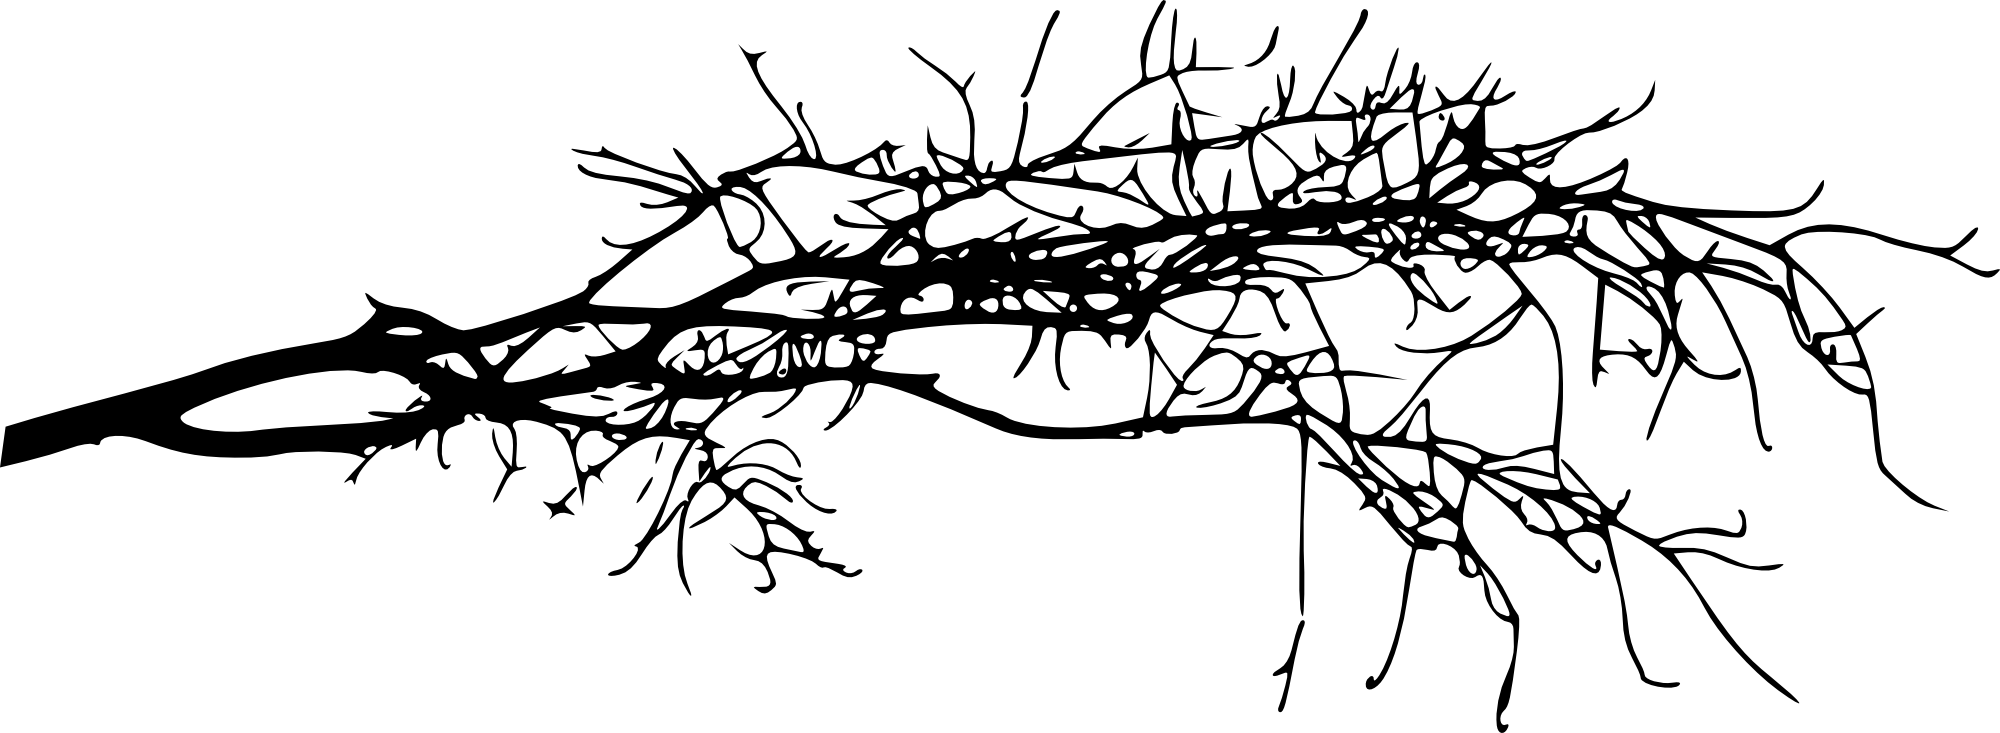 tree branch silhouette 15 simple tree branch silhouettes png transparent silhouette branch tree 1 1